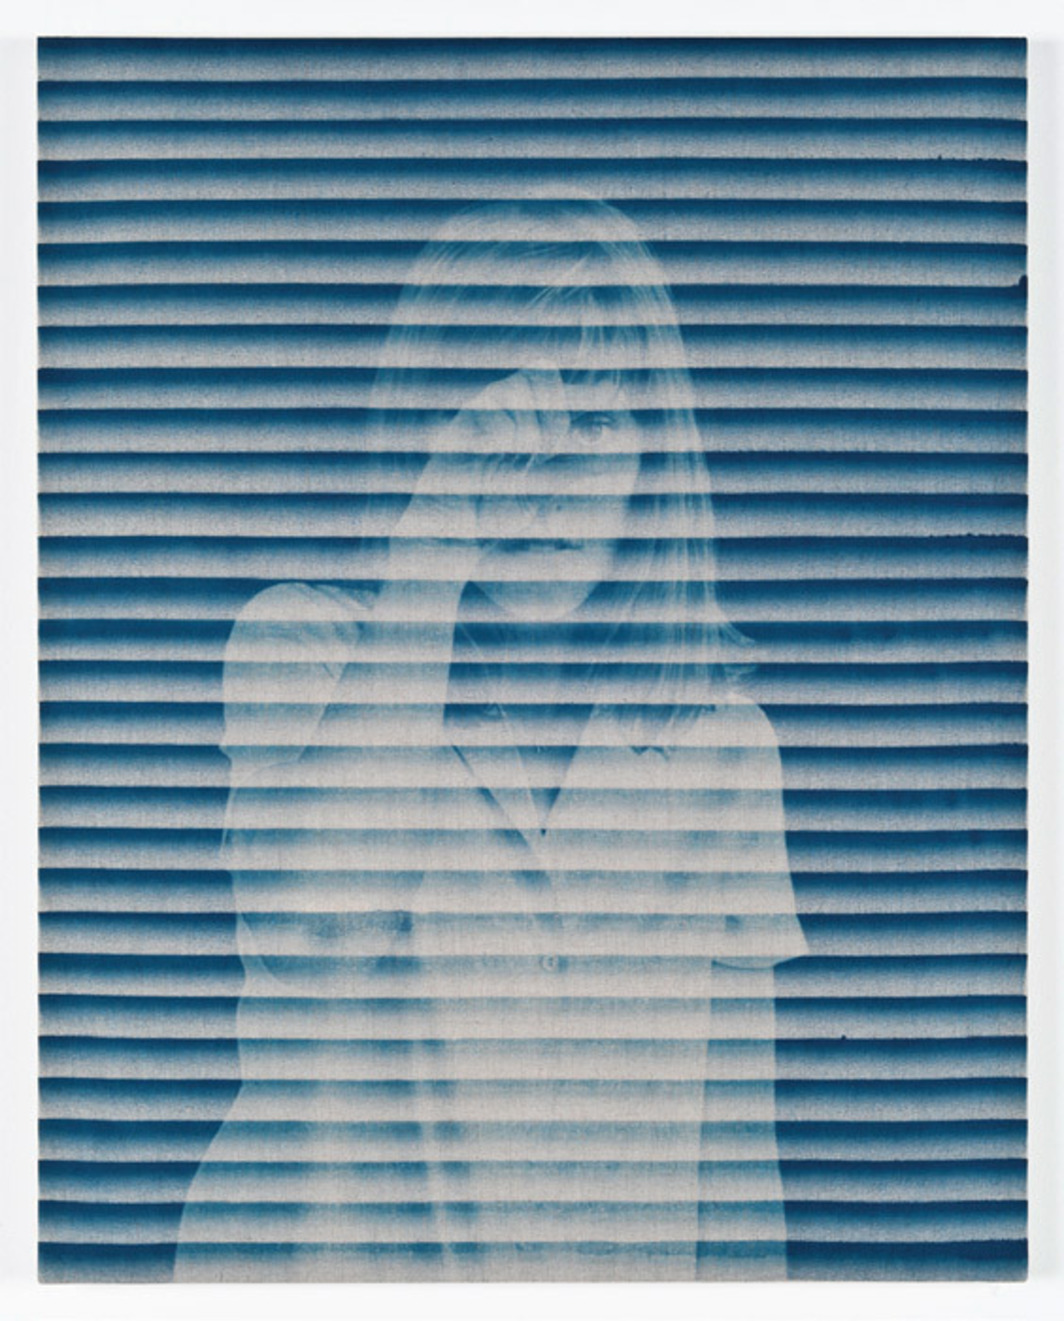 "John Opera, Woman in Window, 2012, cyanotype on stretched linen, 24 x 20""."